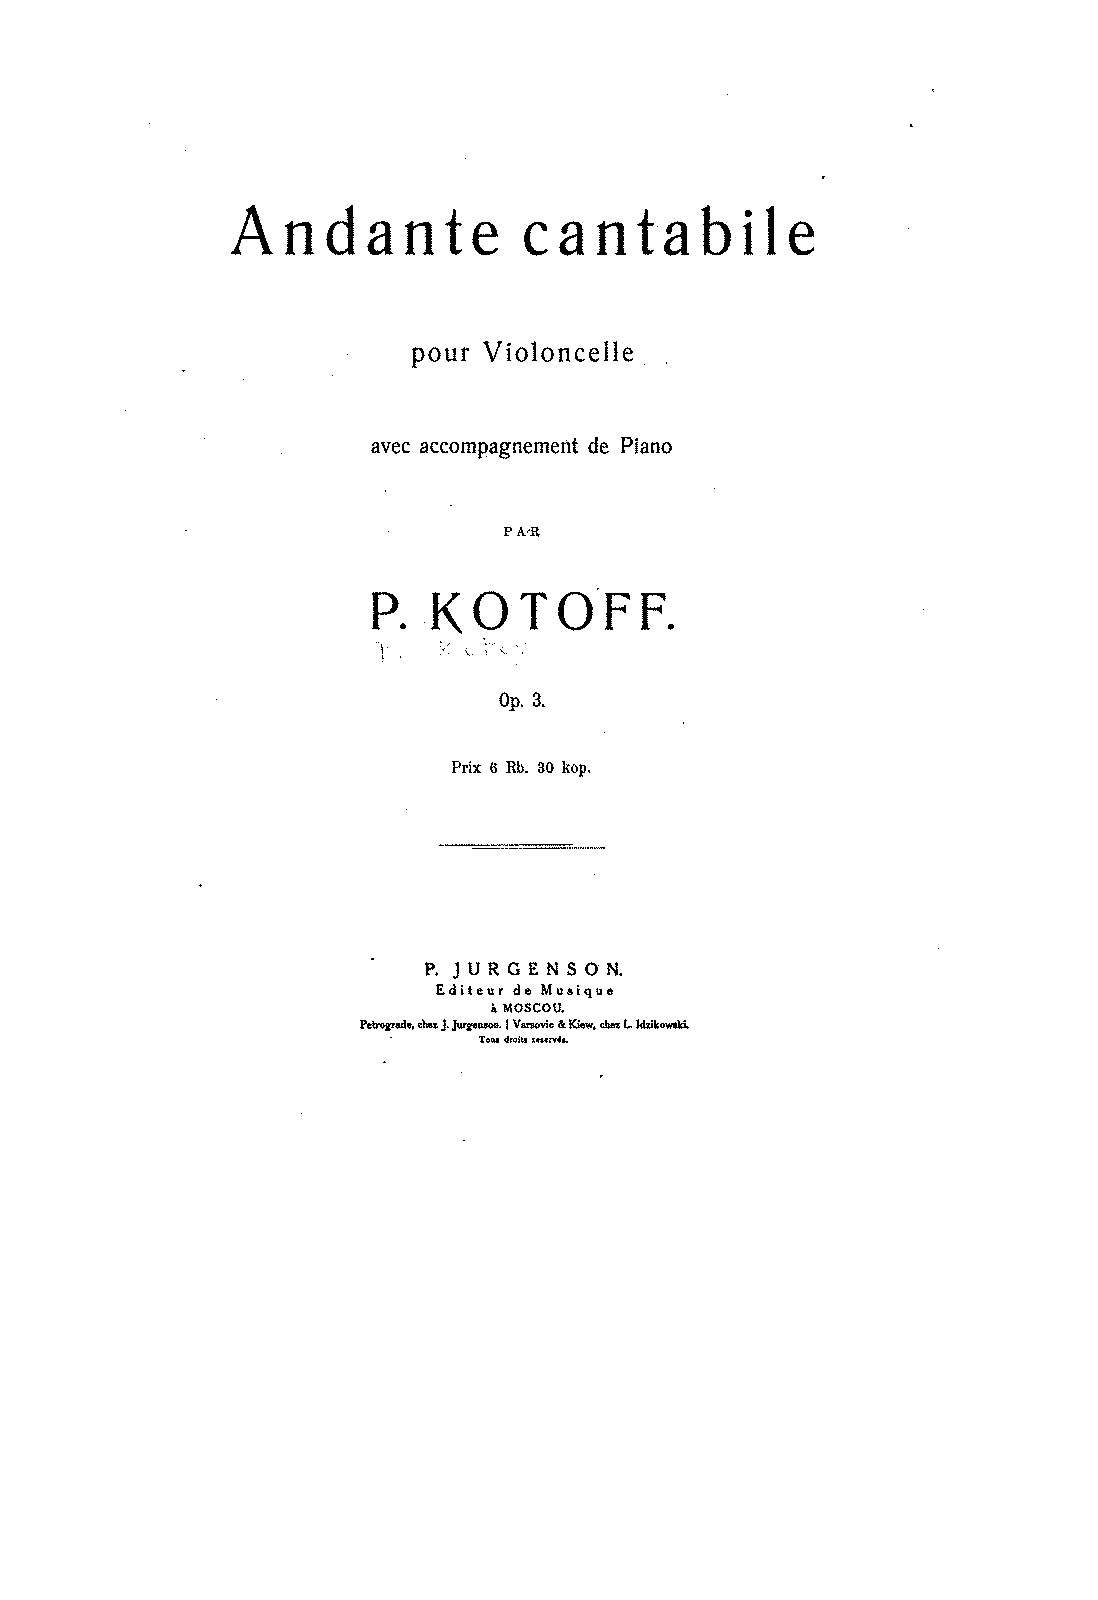 PMLP136655-Kotoff - Andante Cantabile for Cello and Piano score.pdf